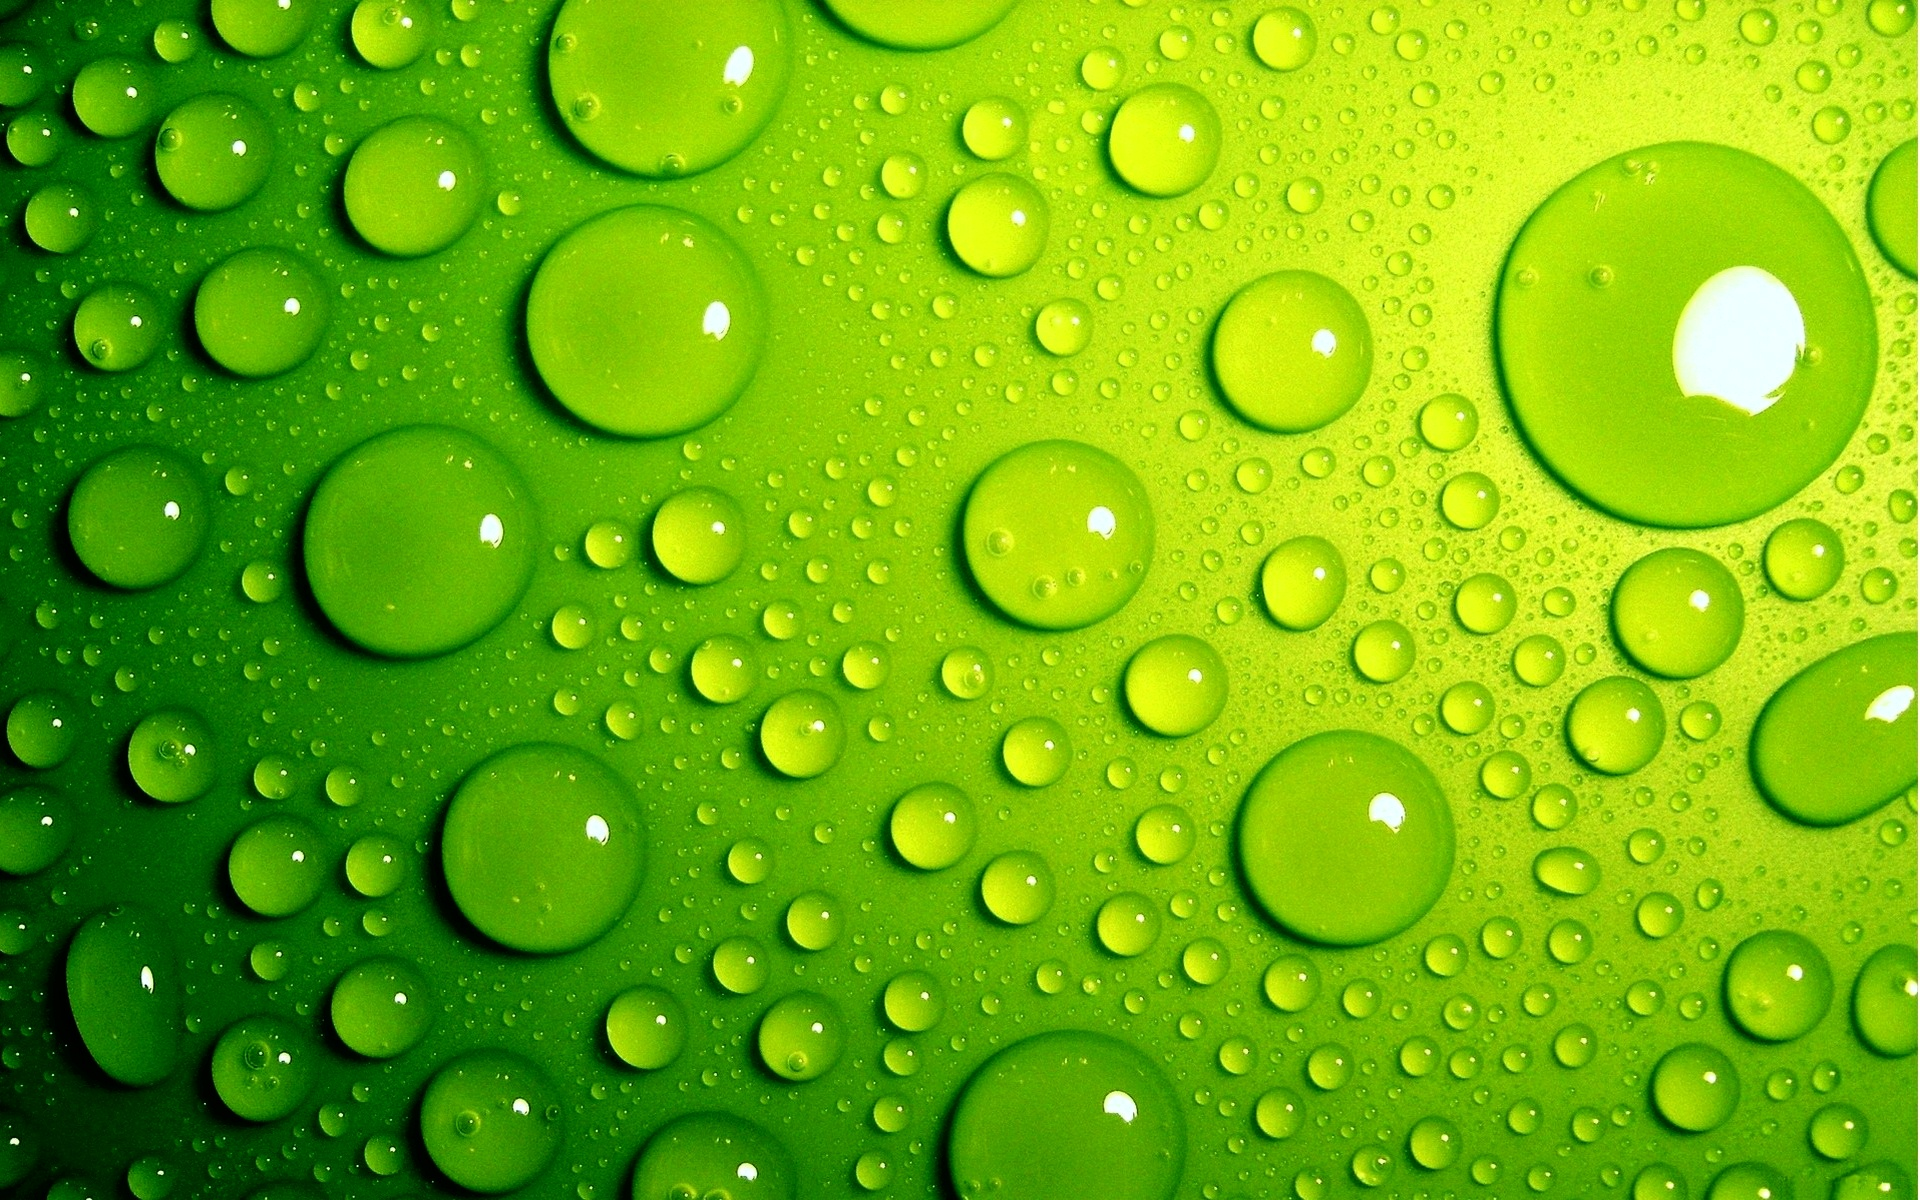 Green Wallpaper Green Wallpaper